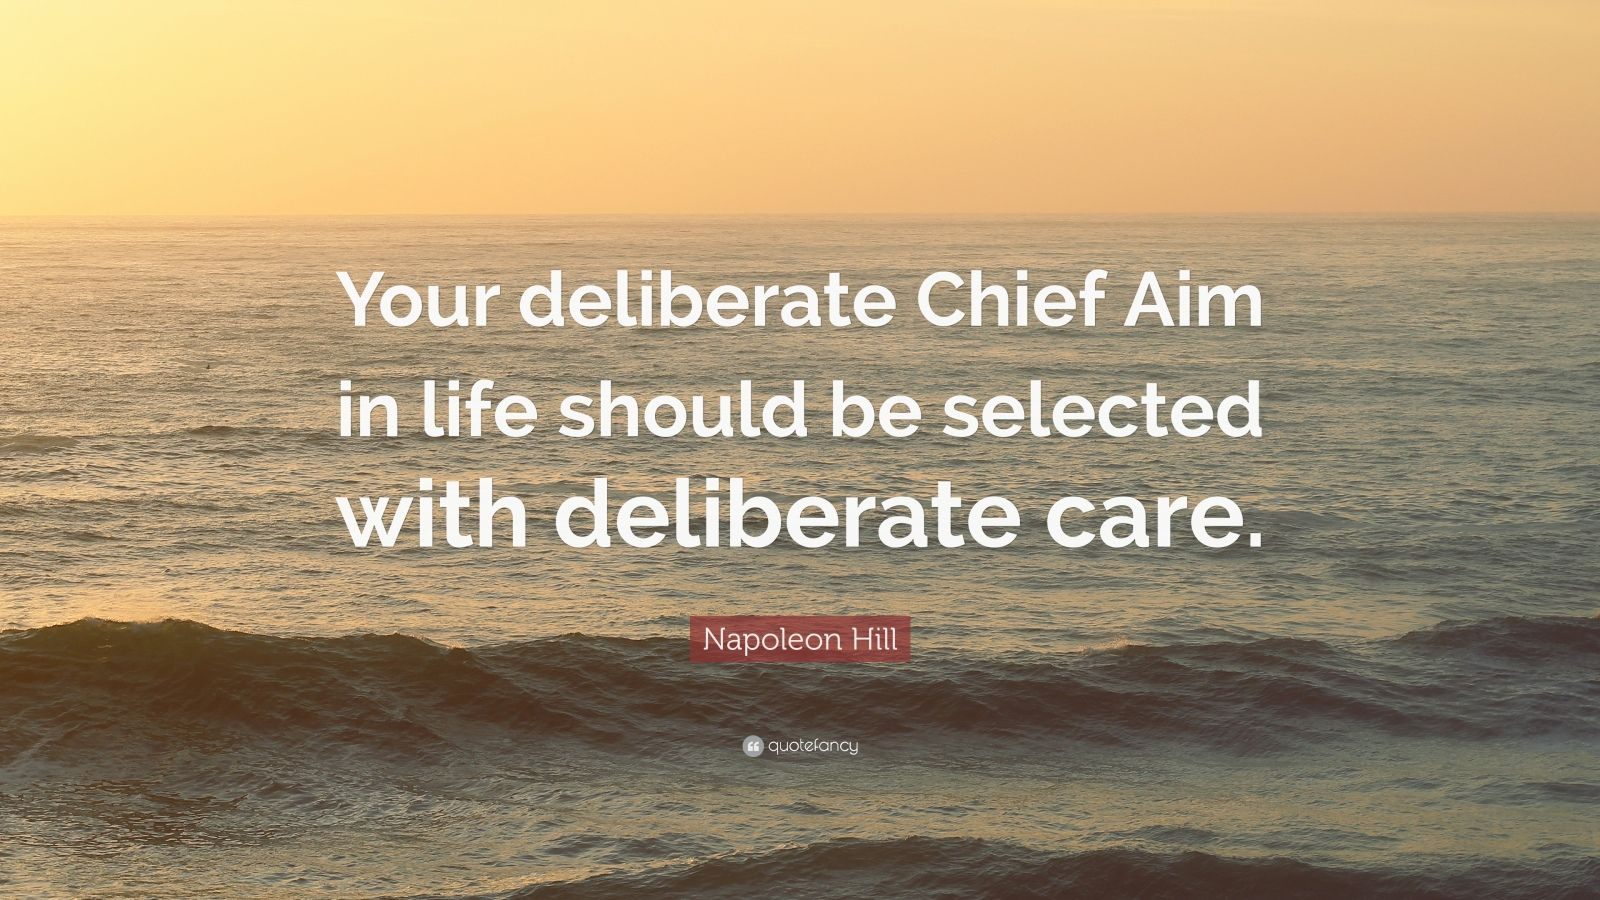 """Napoleon Hill Quote: """"Your deliberate Chief Aim in life should be selected with deliberate care."""""""